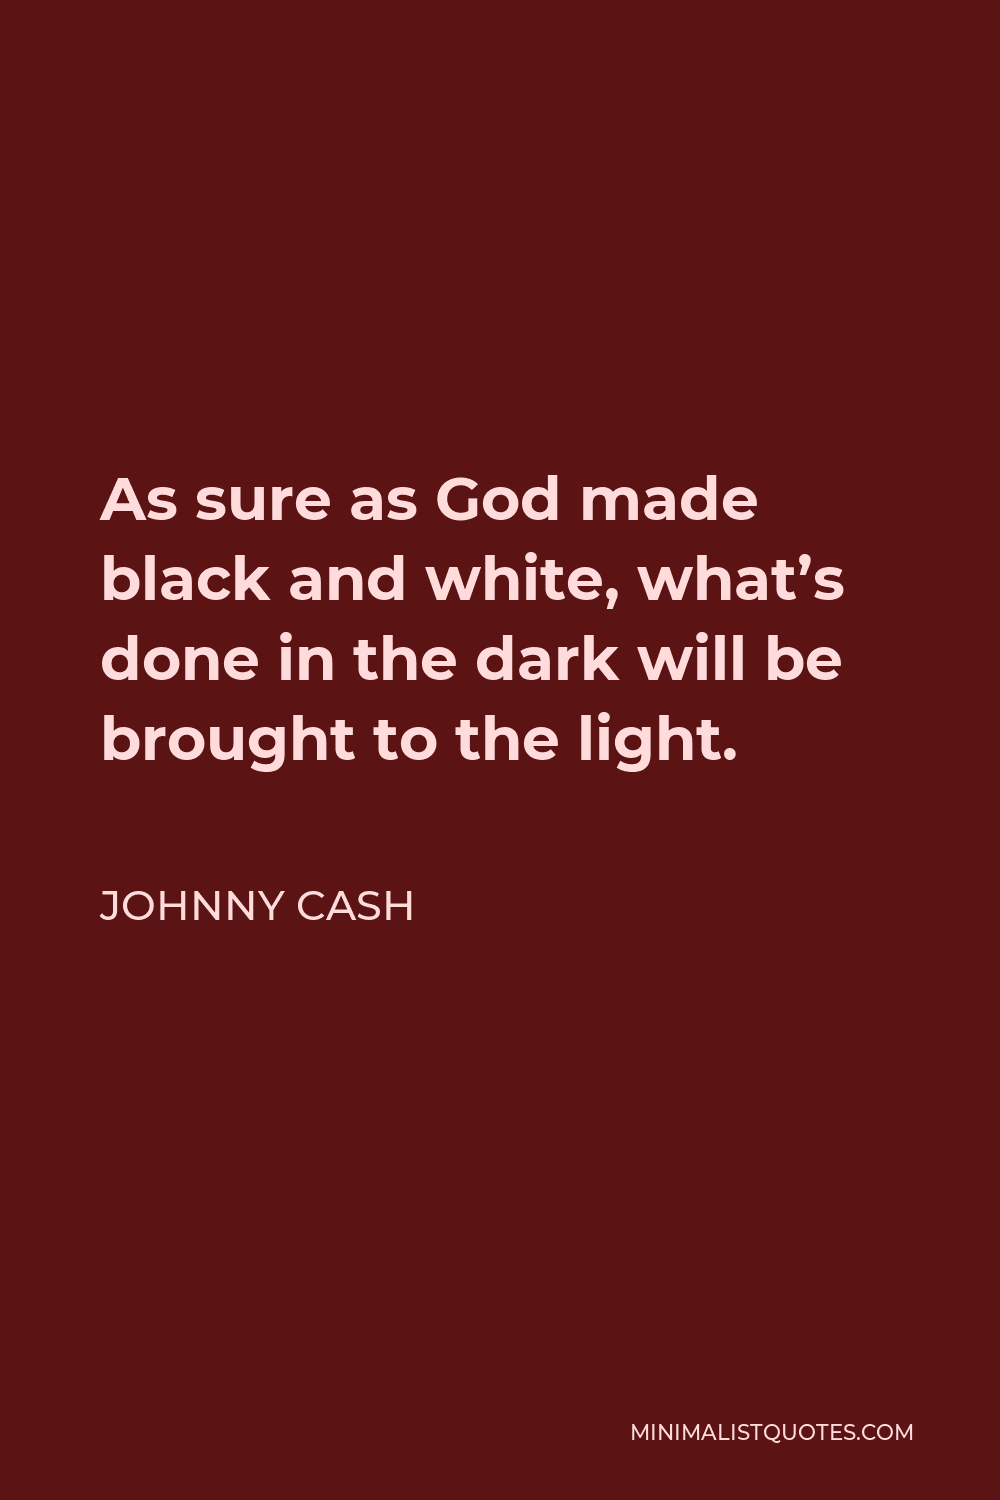 Johnny Cash Quote - As sure as God made black and white, what's done in the dark will be brought to the light.